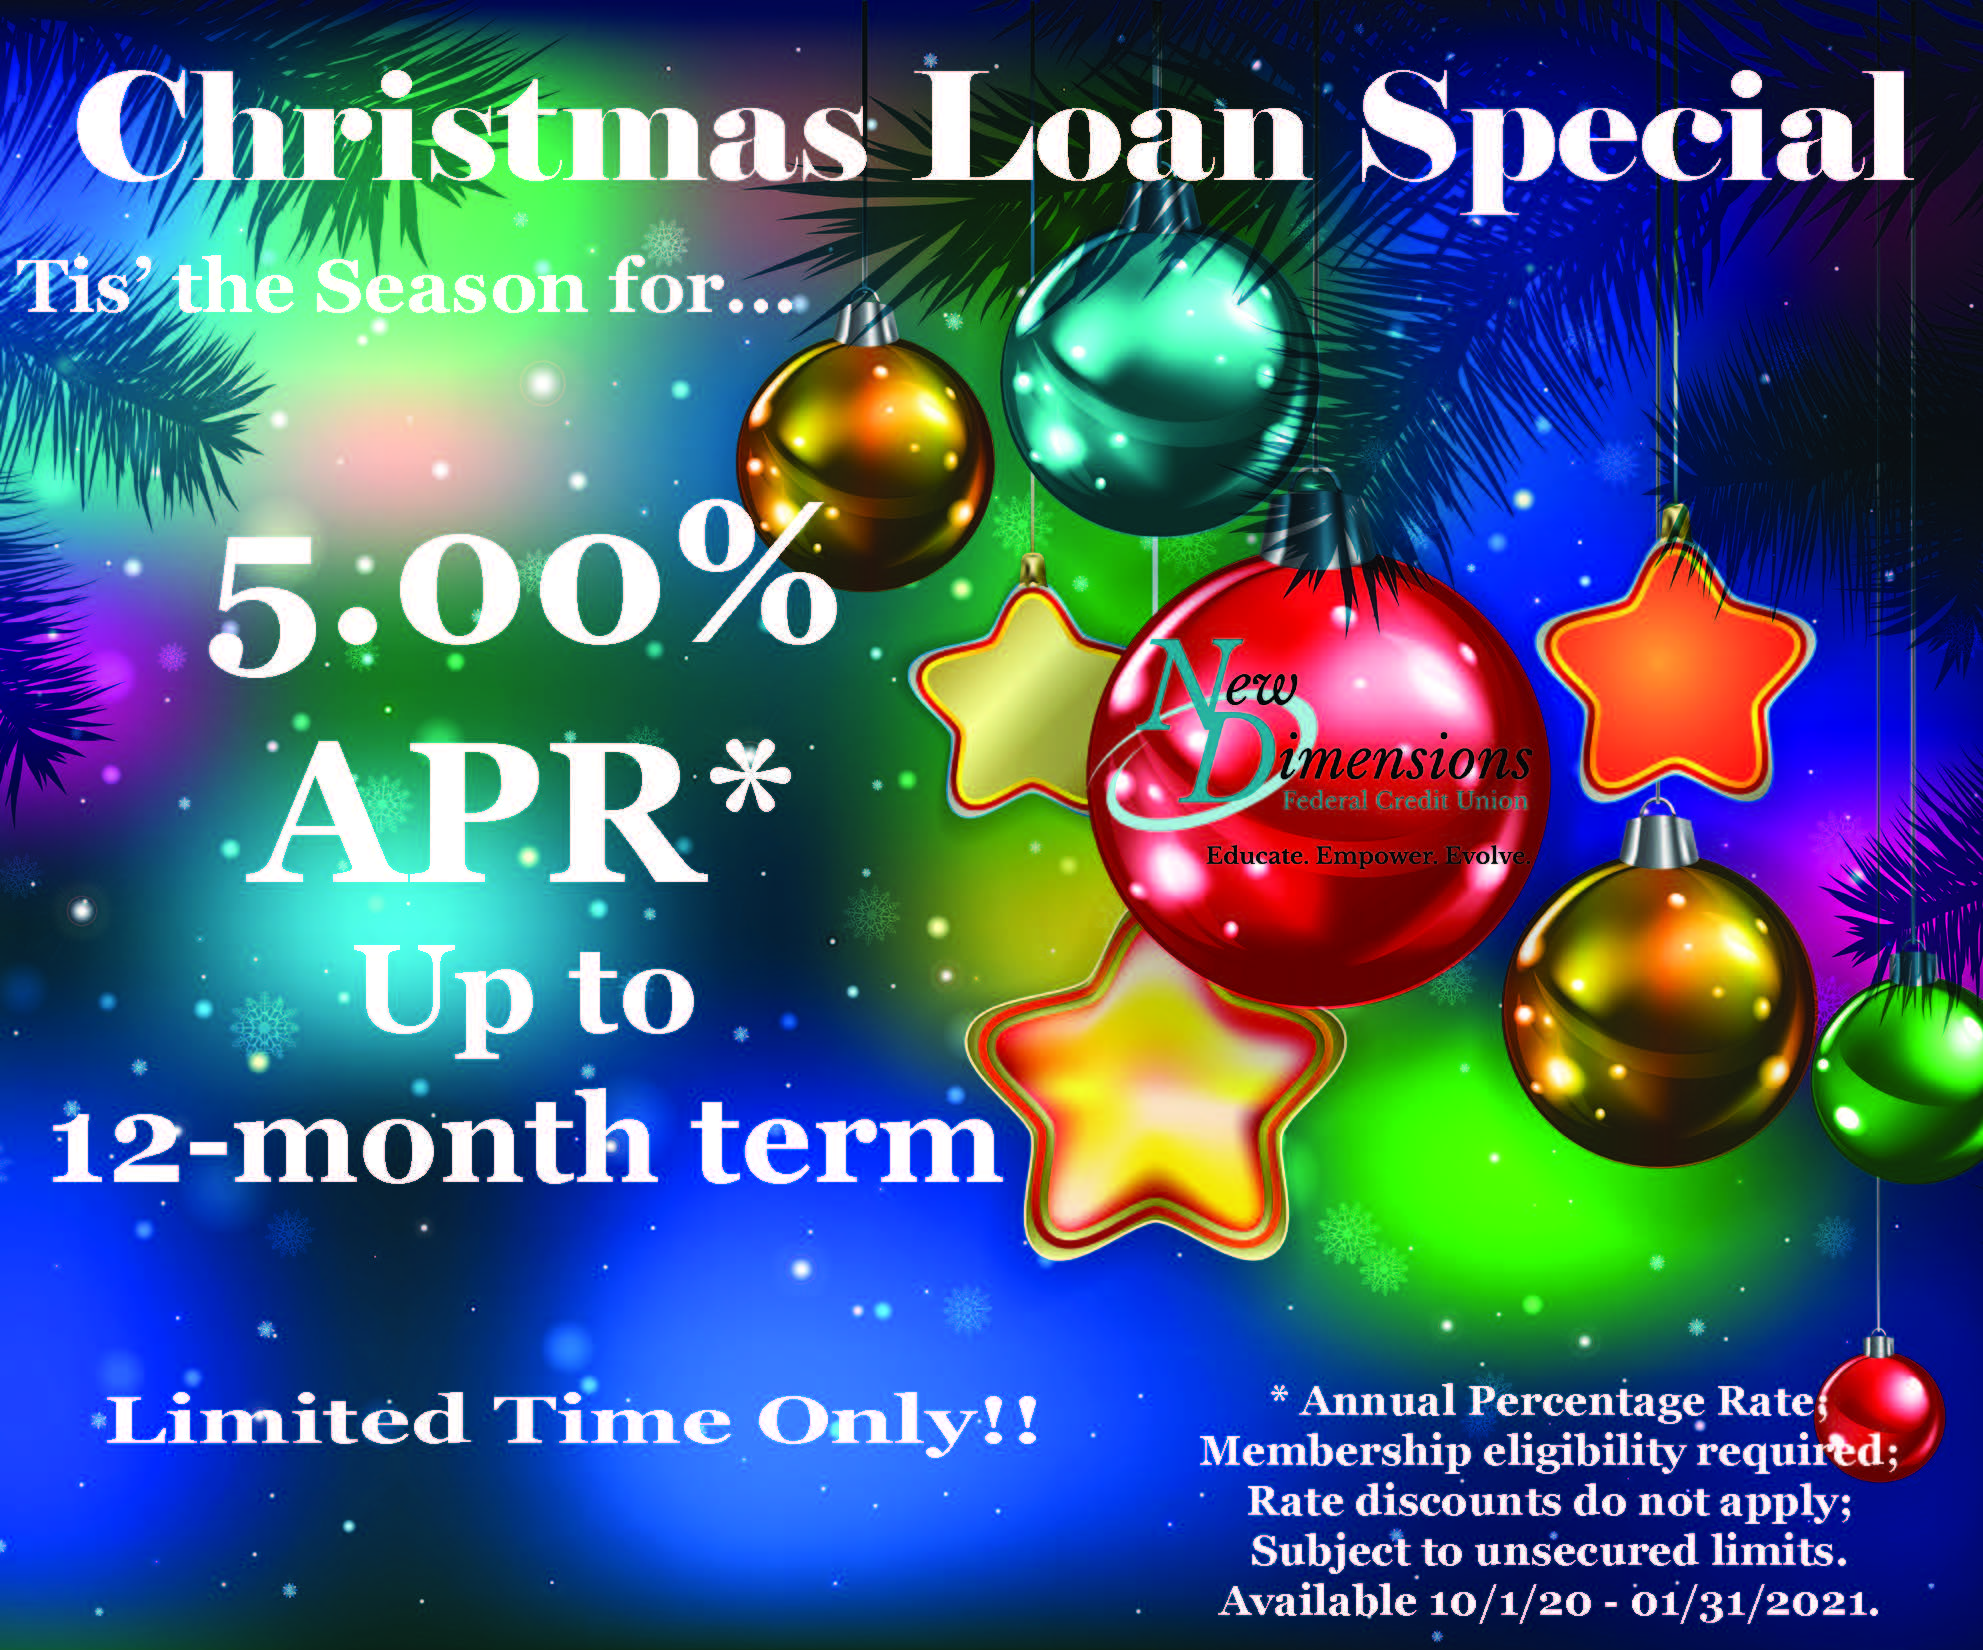 christmas loan special ad 5.00apr. up to 12 mo.